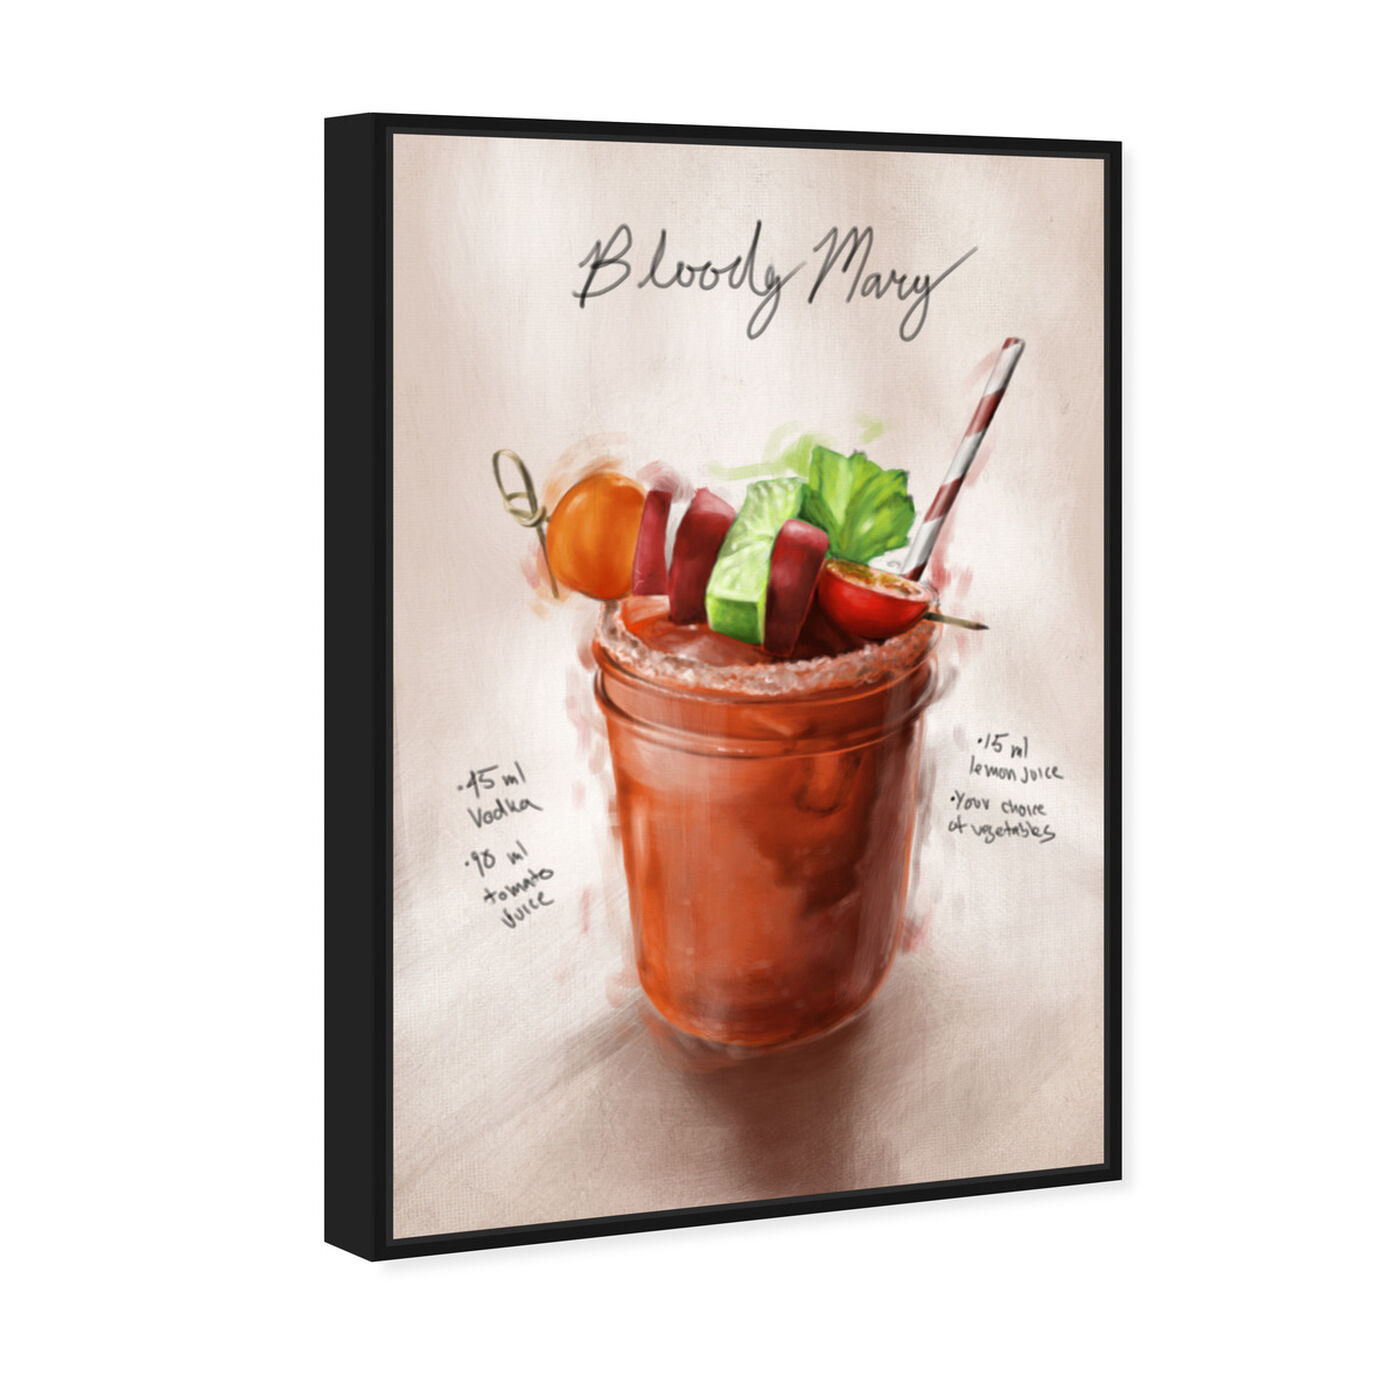 Angled view of Bloody Mary featuring drinks and spirits and cocktails art.